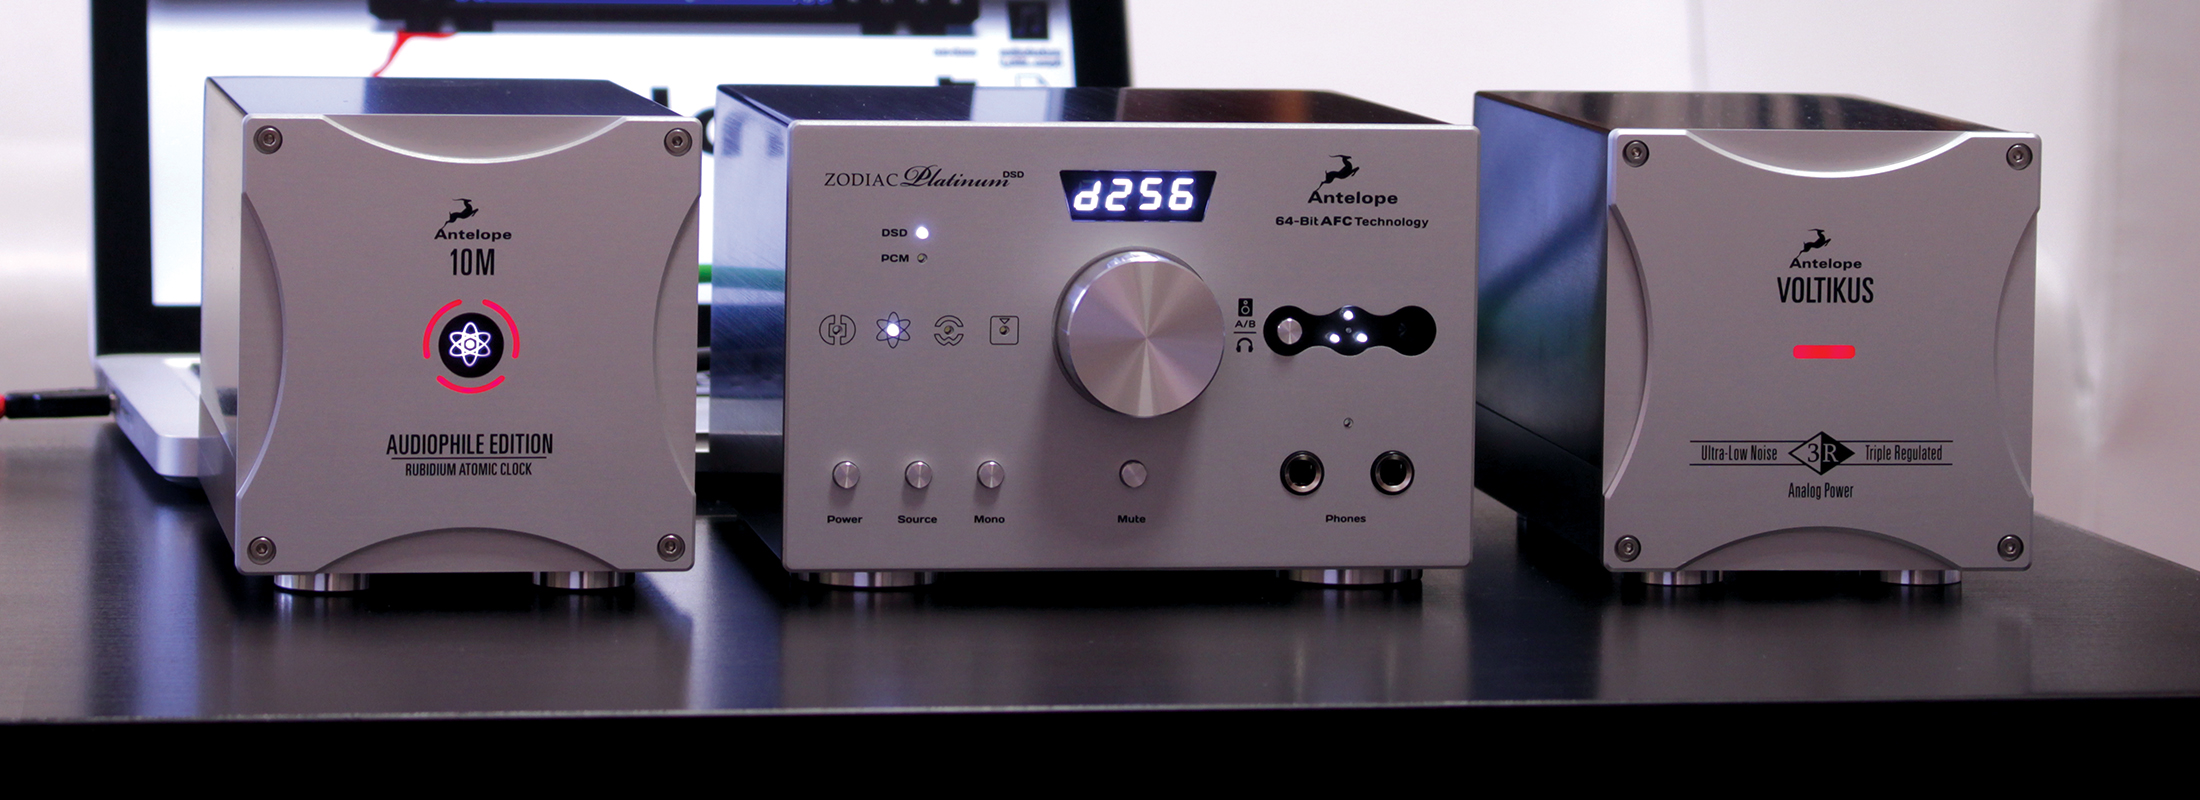 New for CES: The Antelope Audio Zodiac Platinum DSD DAC and Audiophile 10M Atomic Clock Combination Takes Your Listening Room to New Sensory Heights